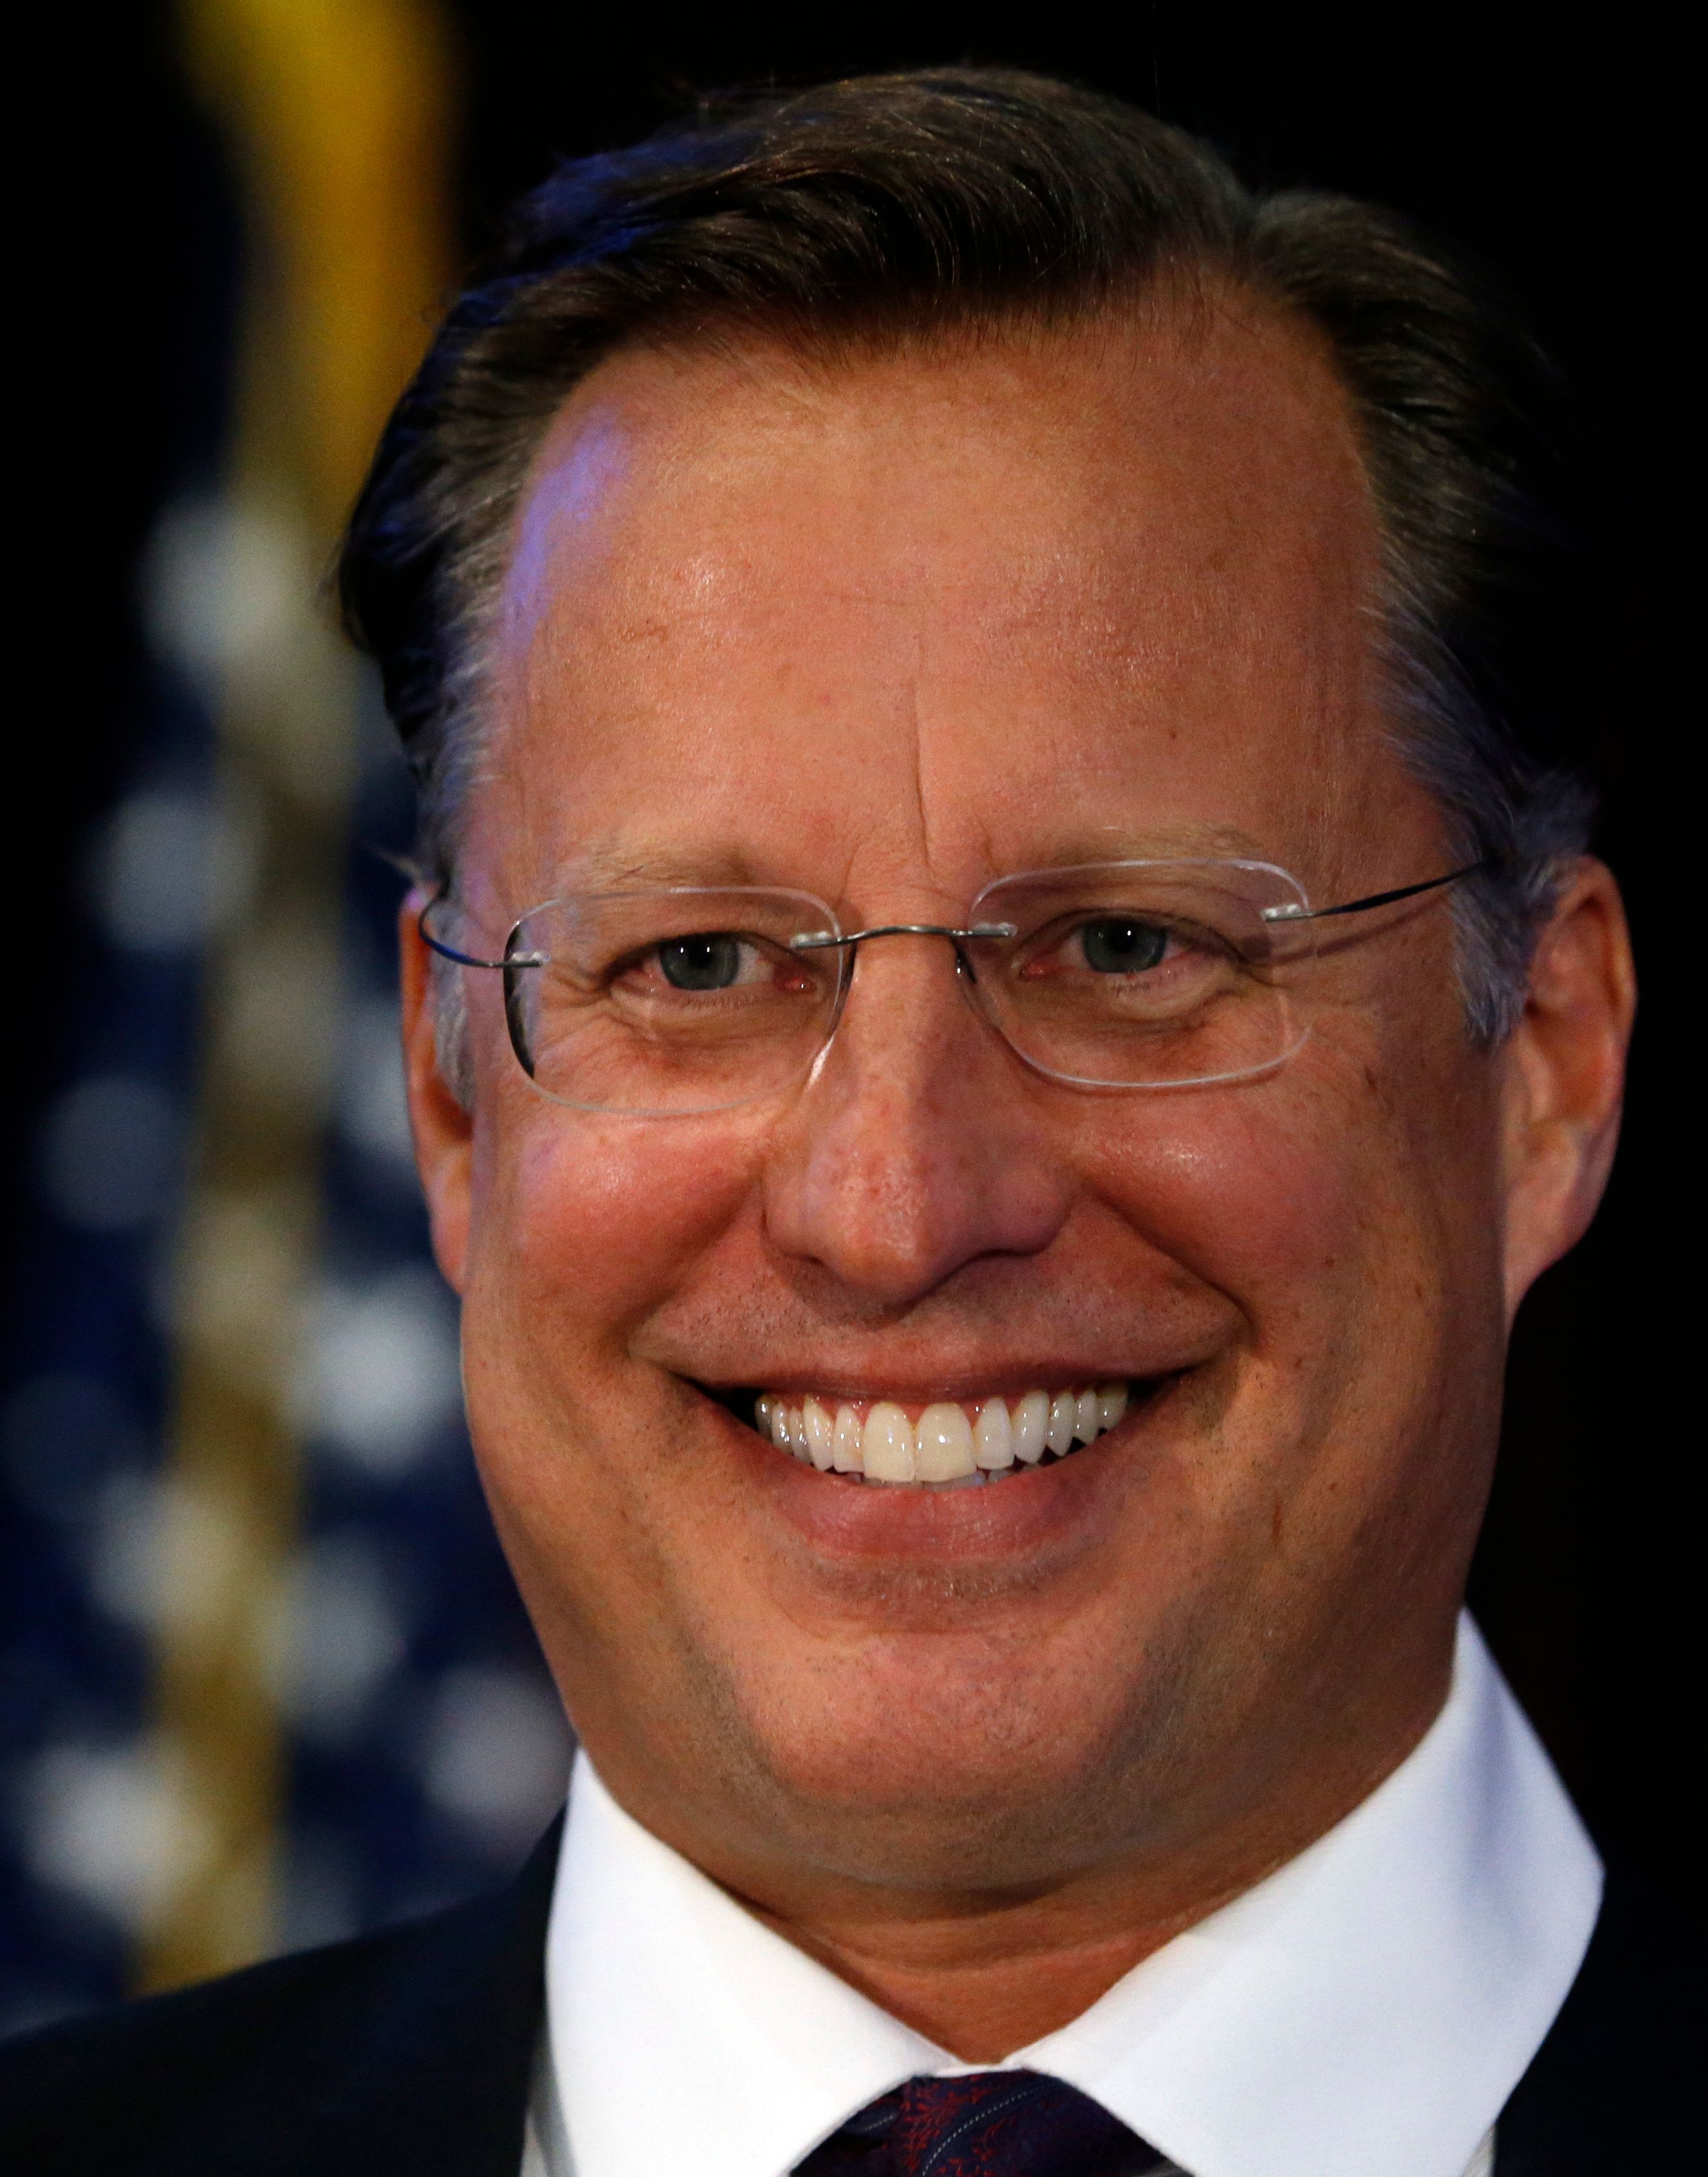 Virginia Congressman Dave Brat, R-Va., smiles during a microphone check prior to a debate with Democratic challenger Abigail Spanberger at Germanna Community College in Culpeper, Va., Monday, Oct. 15, 2018. (AP Photo/Steve Helber)